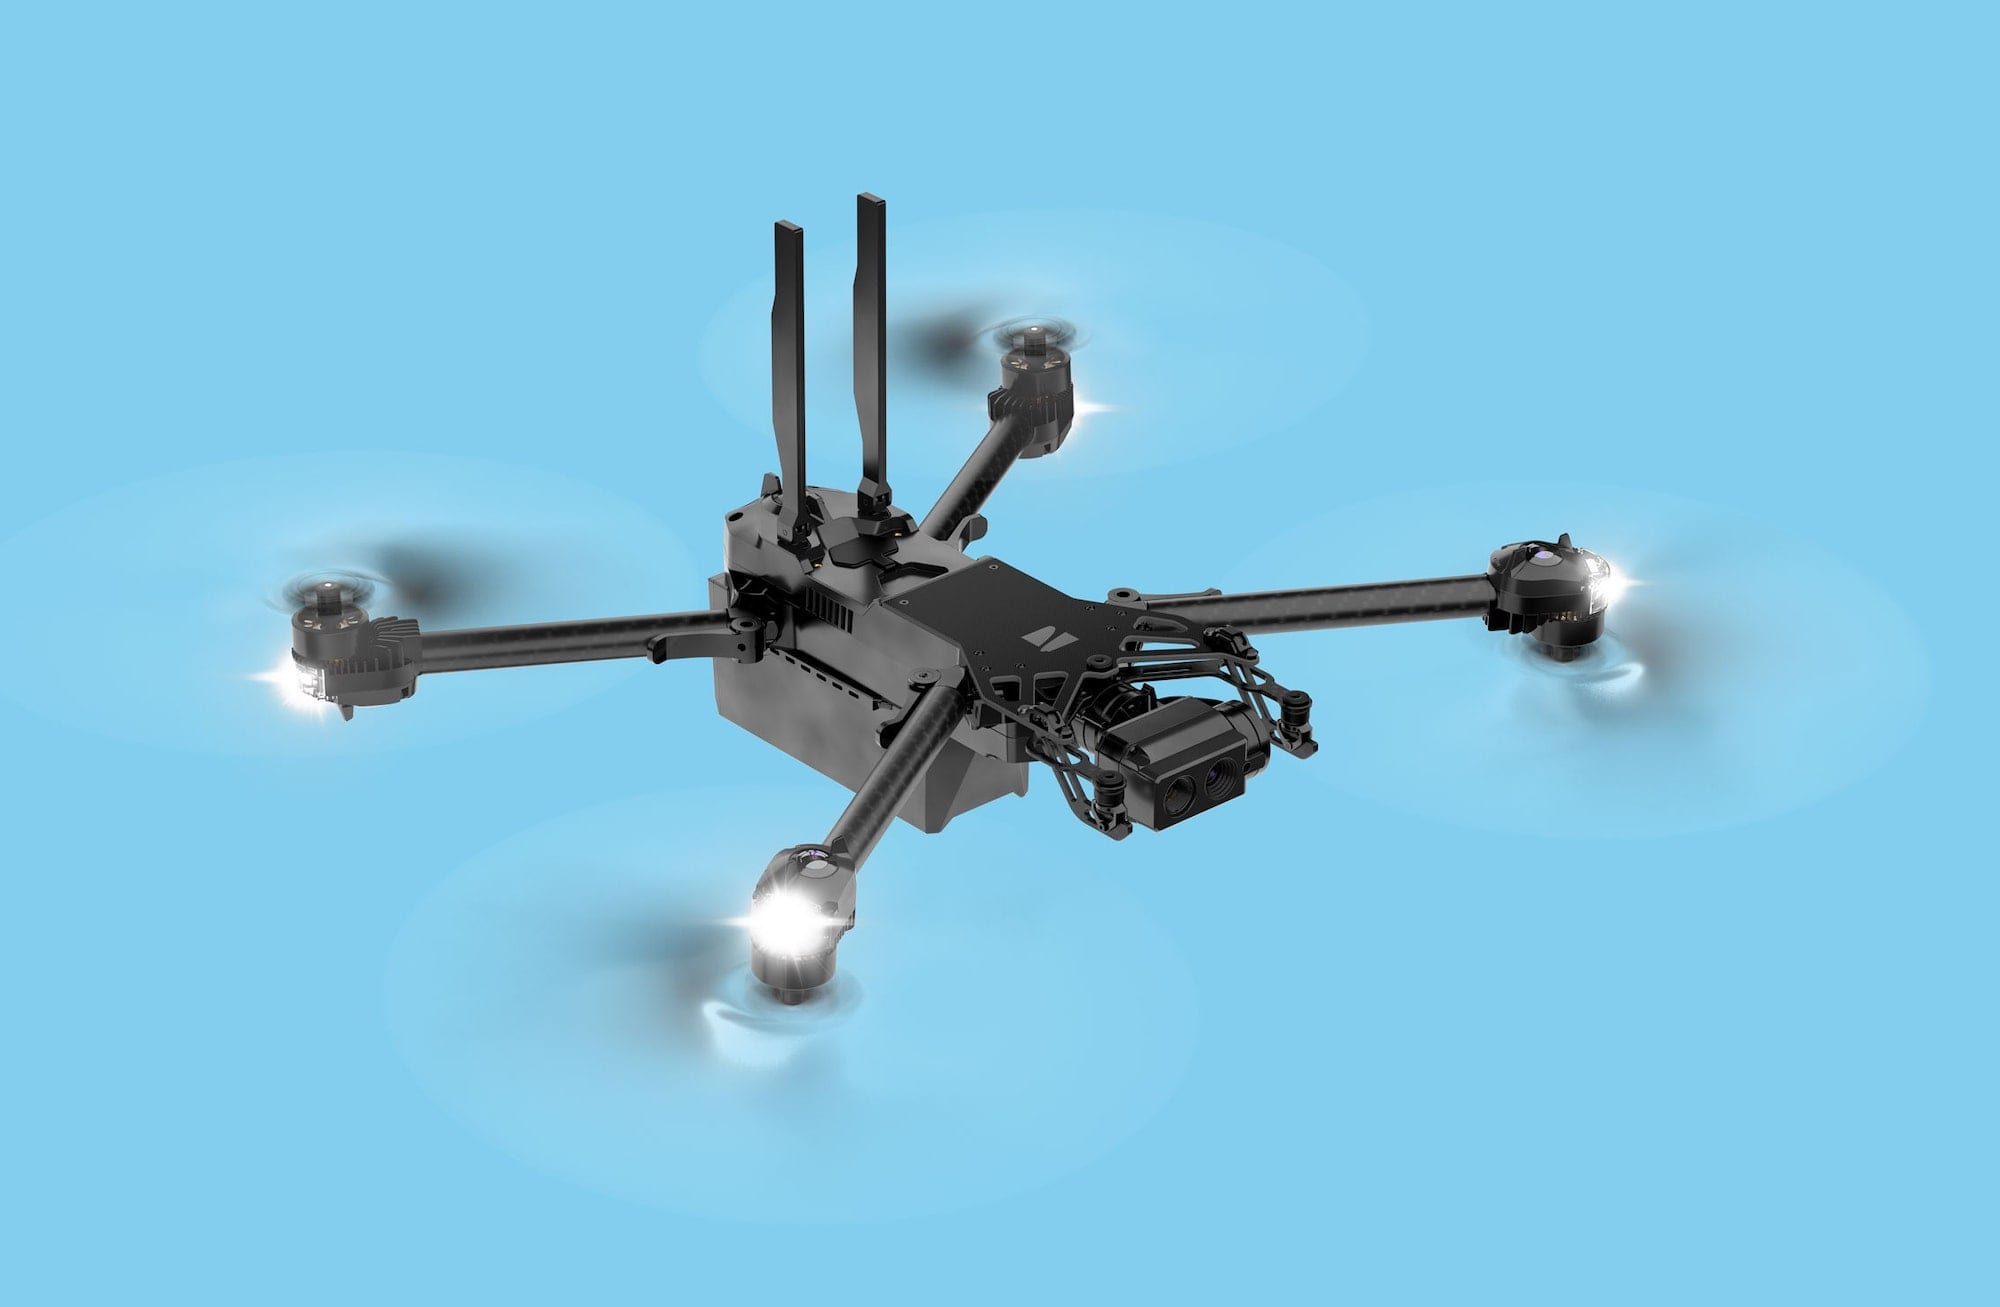 Skydio launches X2 commercial drone and raises $100 million